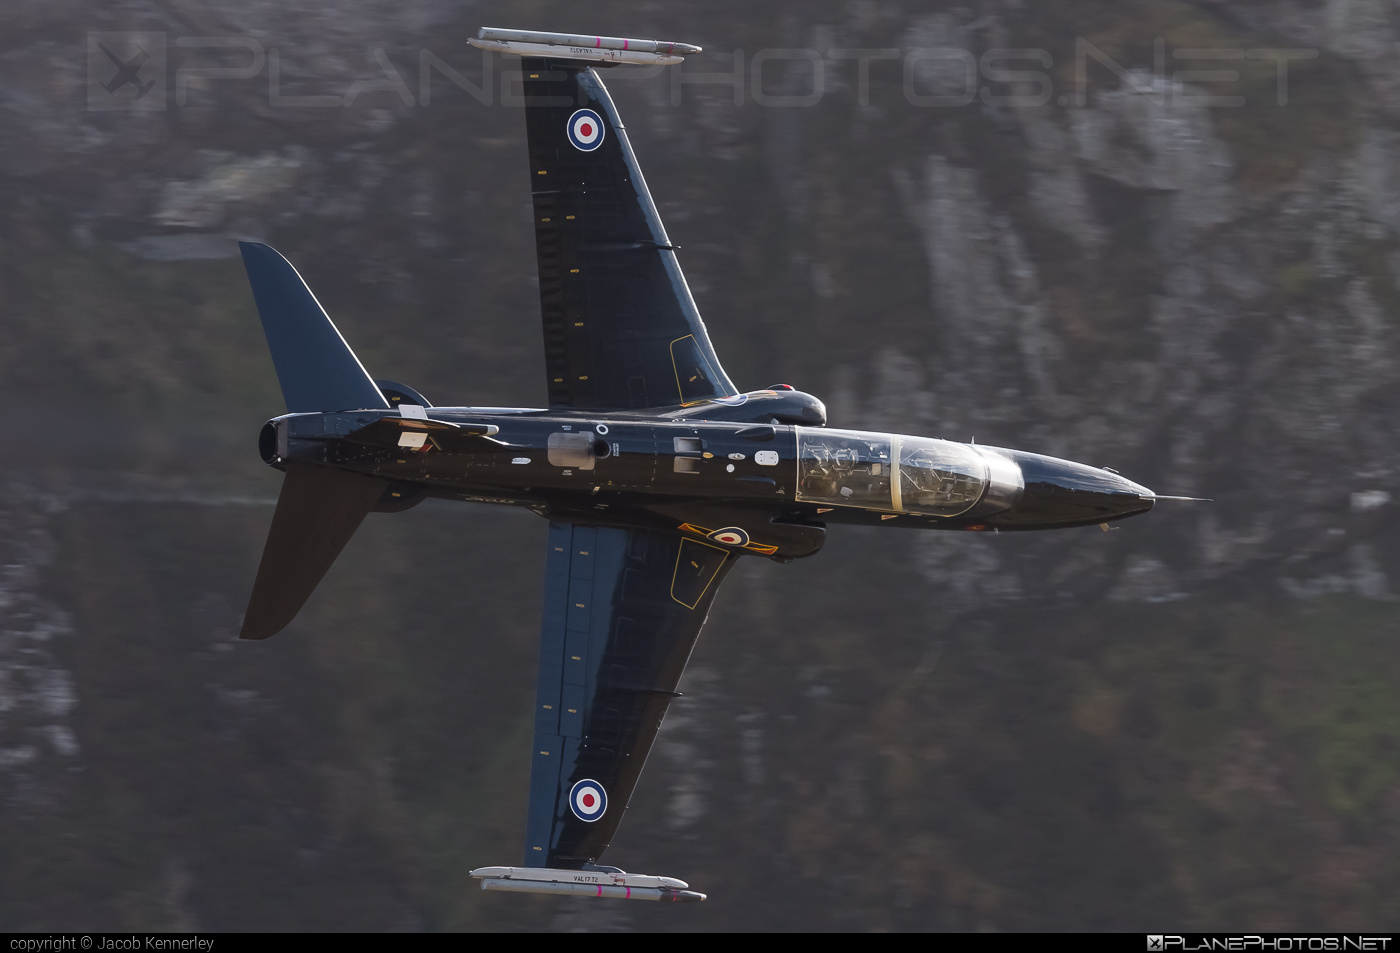 British Aerospace Hawk T2 - ZK035 operated by Royal Air Force (RAF) #britishaerospace #machloop #raf #royalairforce